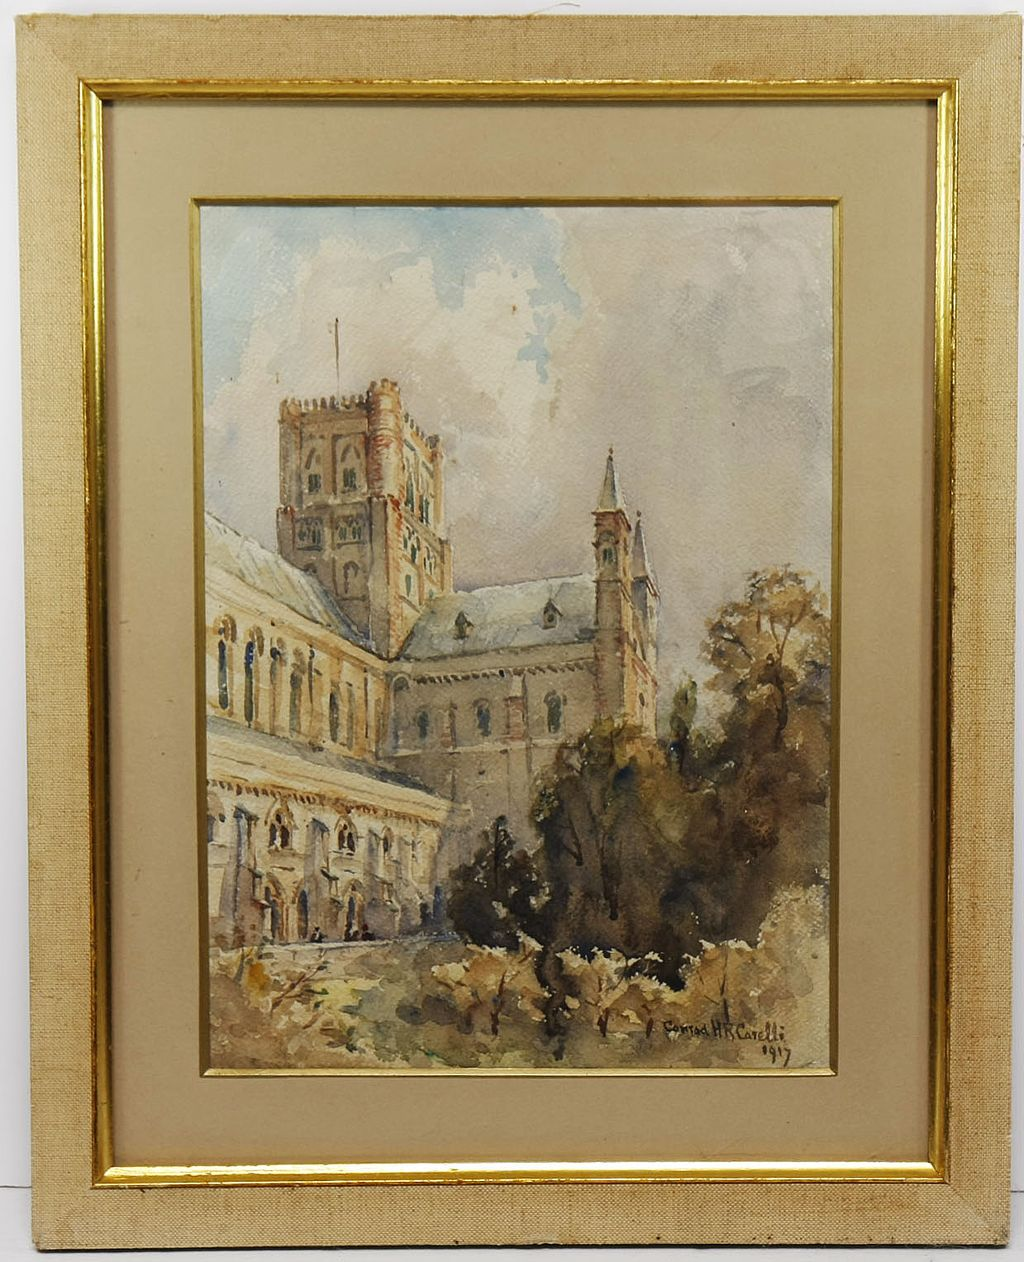 St. Albans Cathedral, 1917, Original Watercolor by Conrad H. R. Carelli